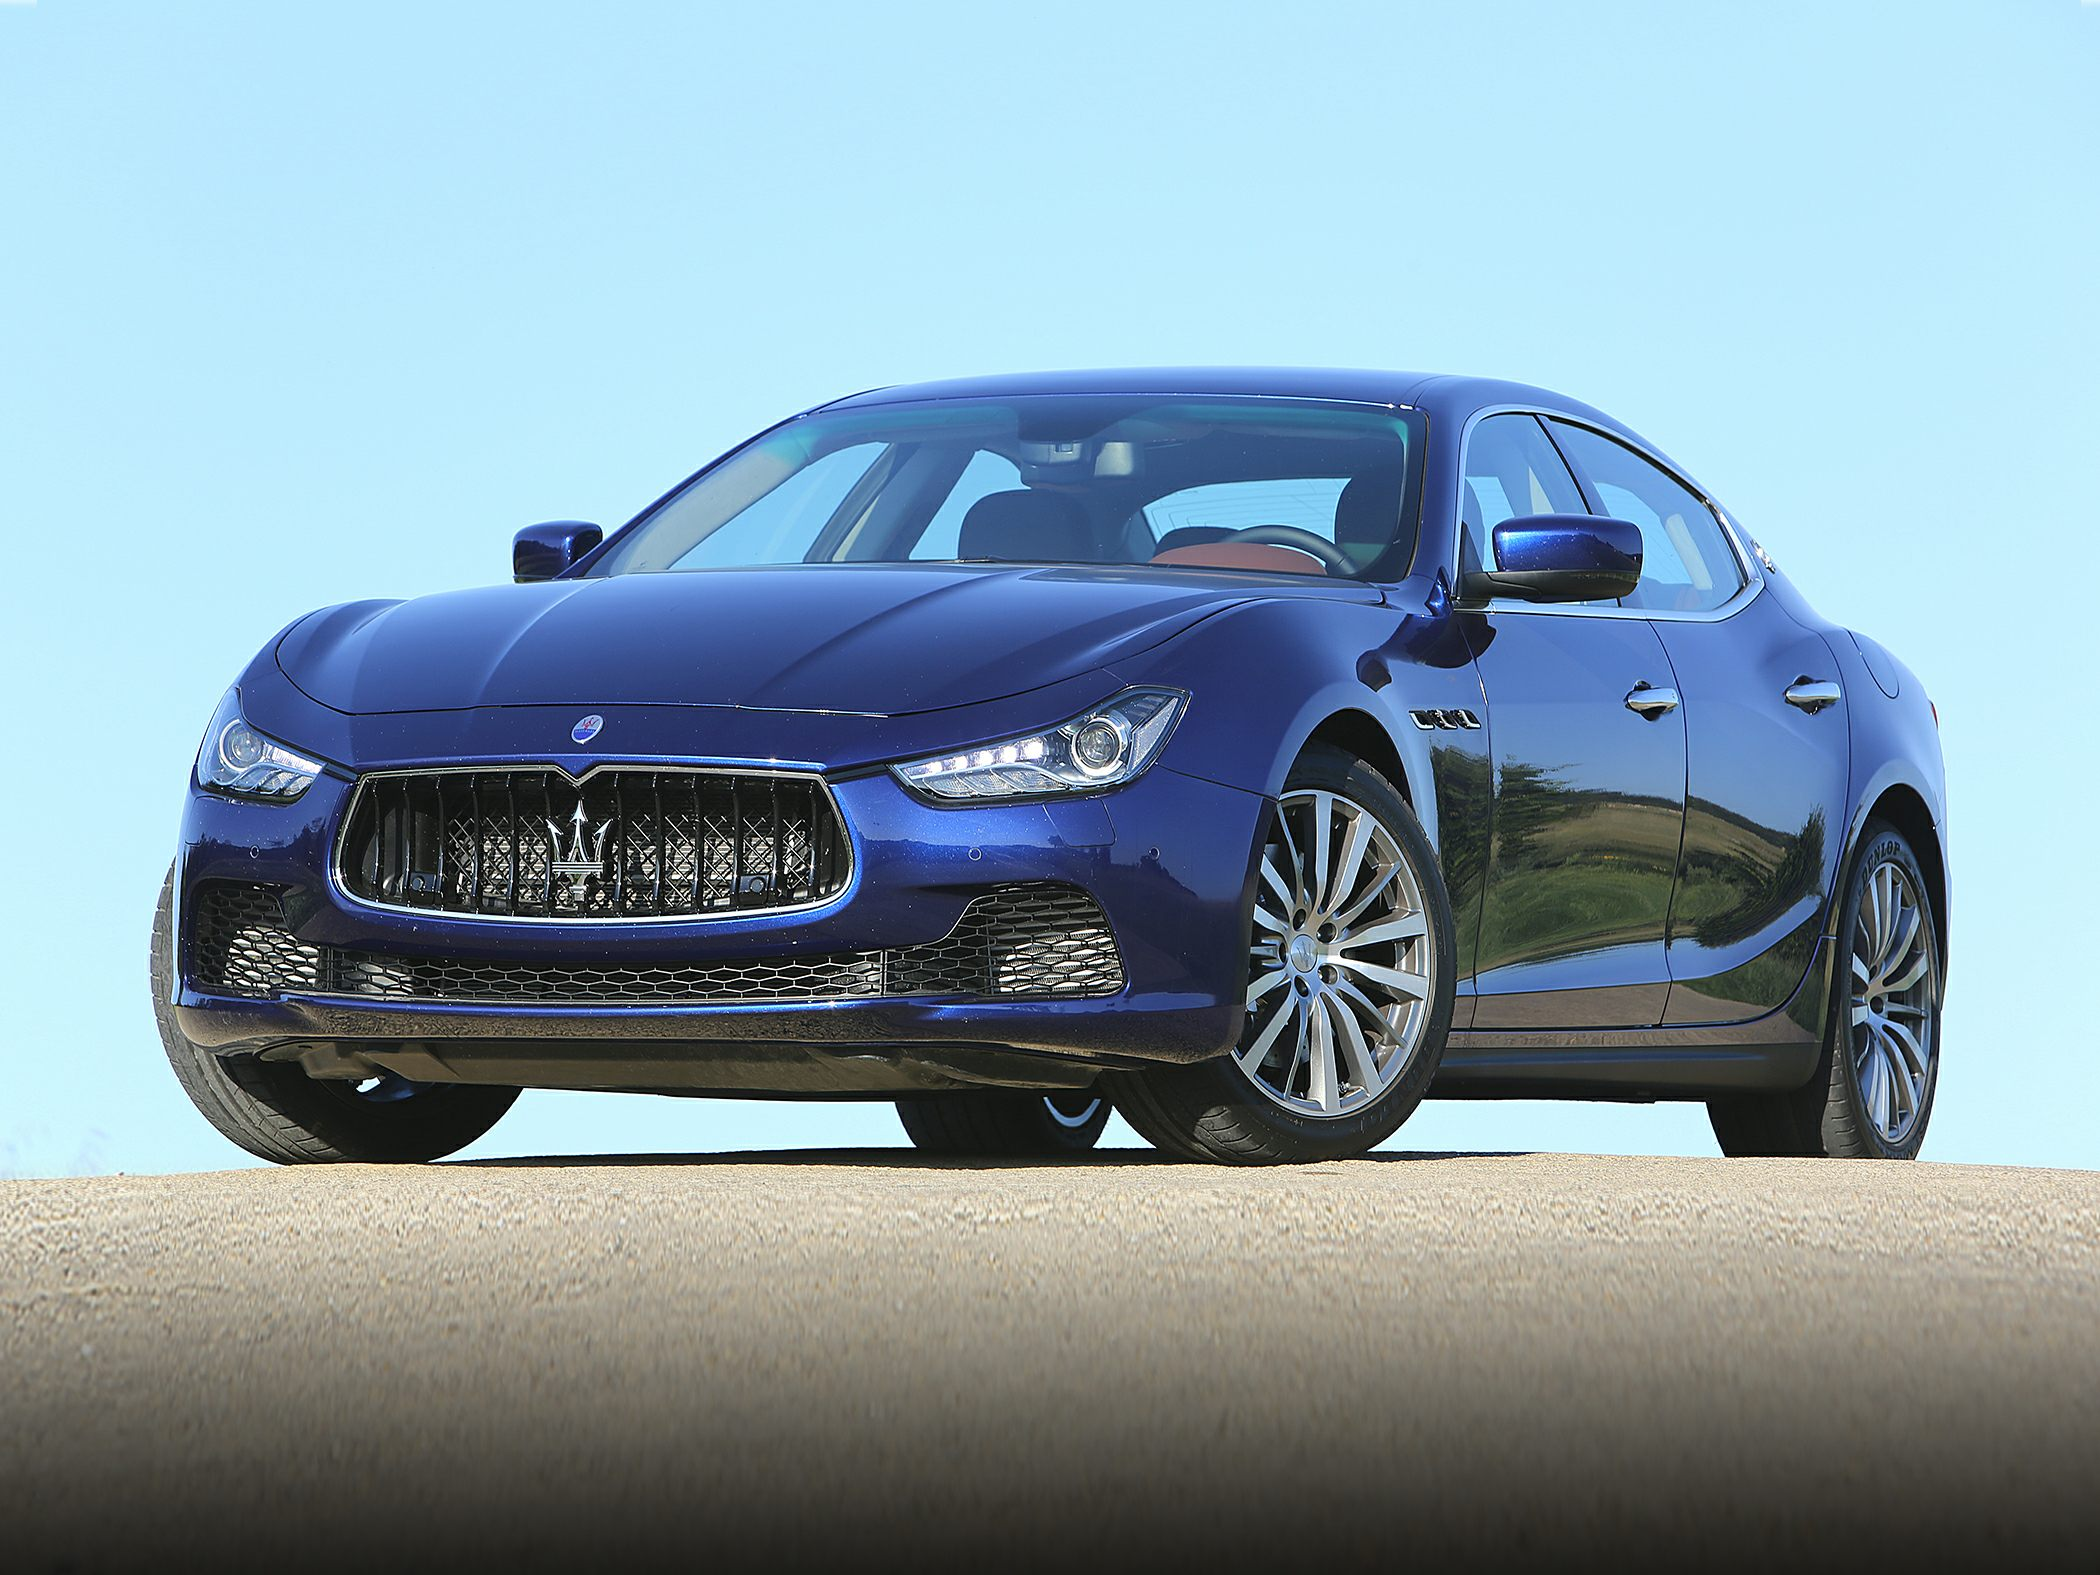 Lovely Maserati Ghibli Cost Of Ownership